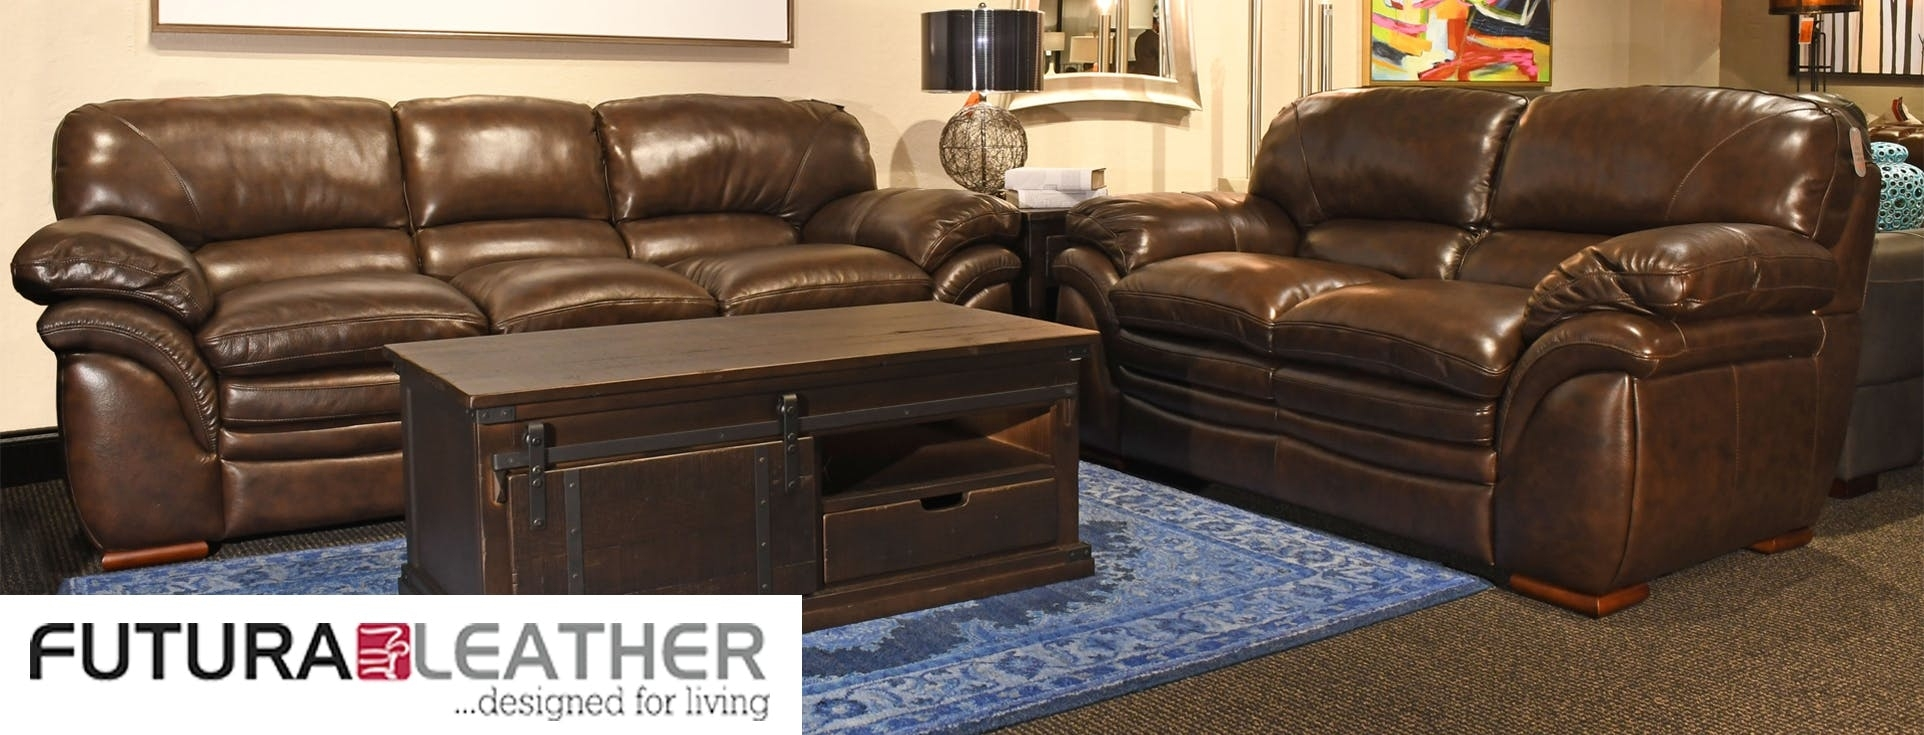 Futura Leather Furniture | Bob Mills Furniture in Mill Large Leather Coffee Tables (Image 18 of 30)